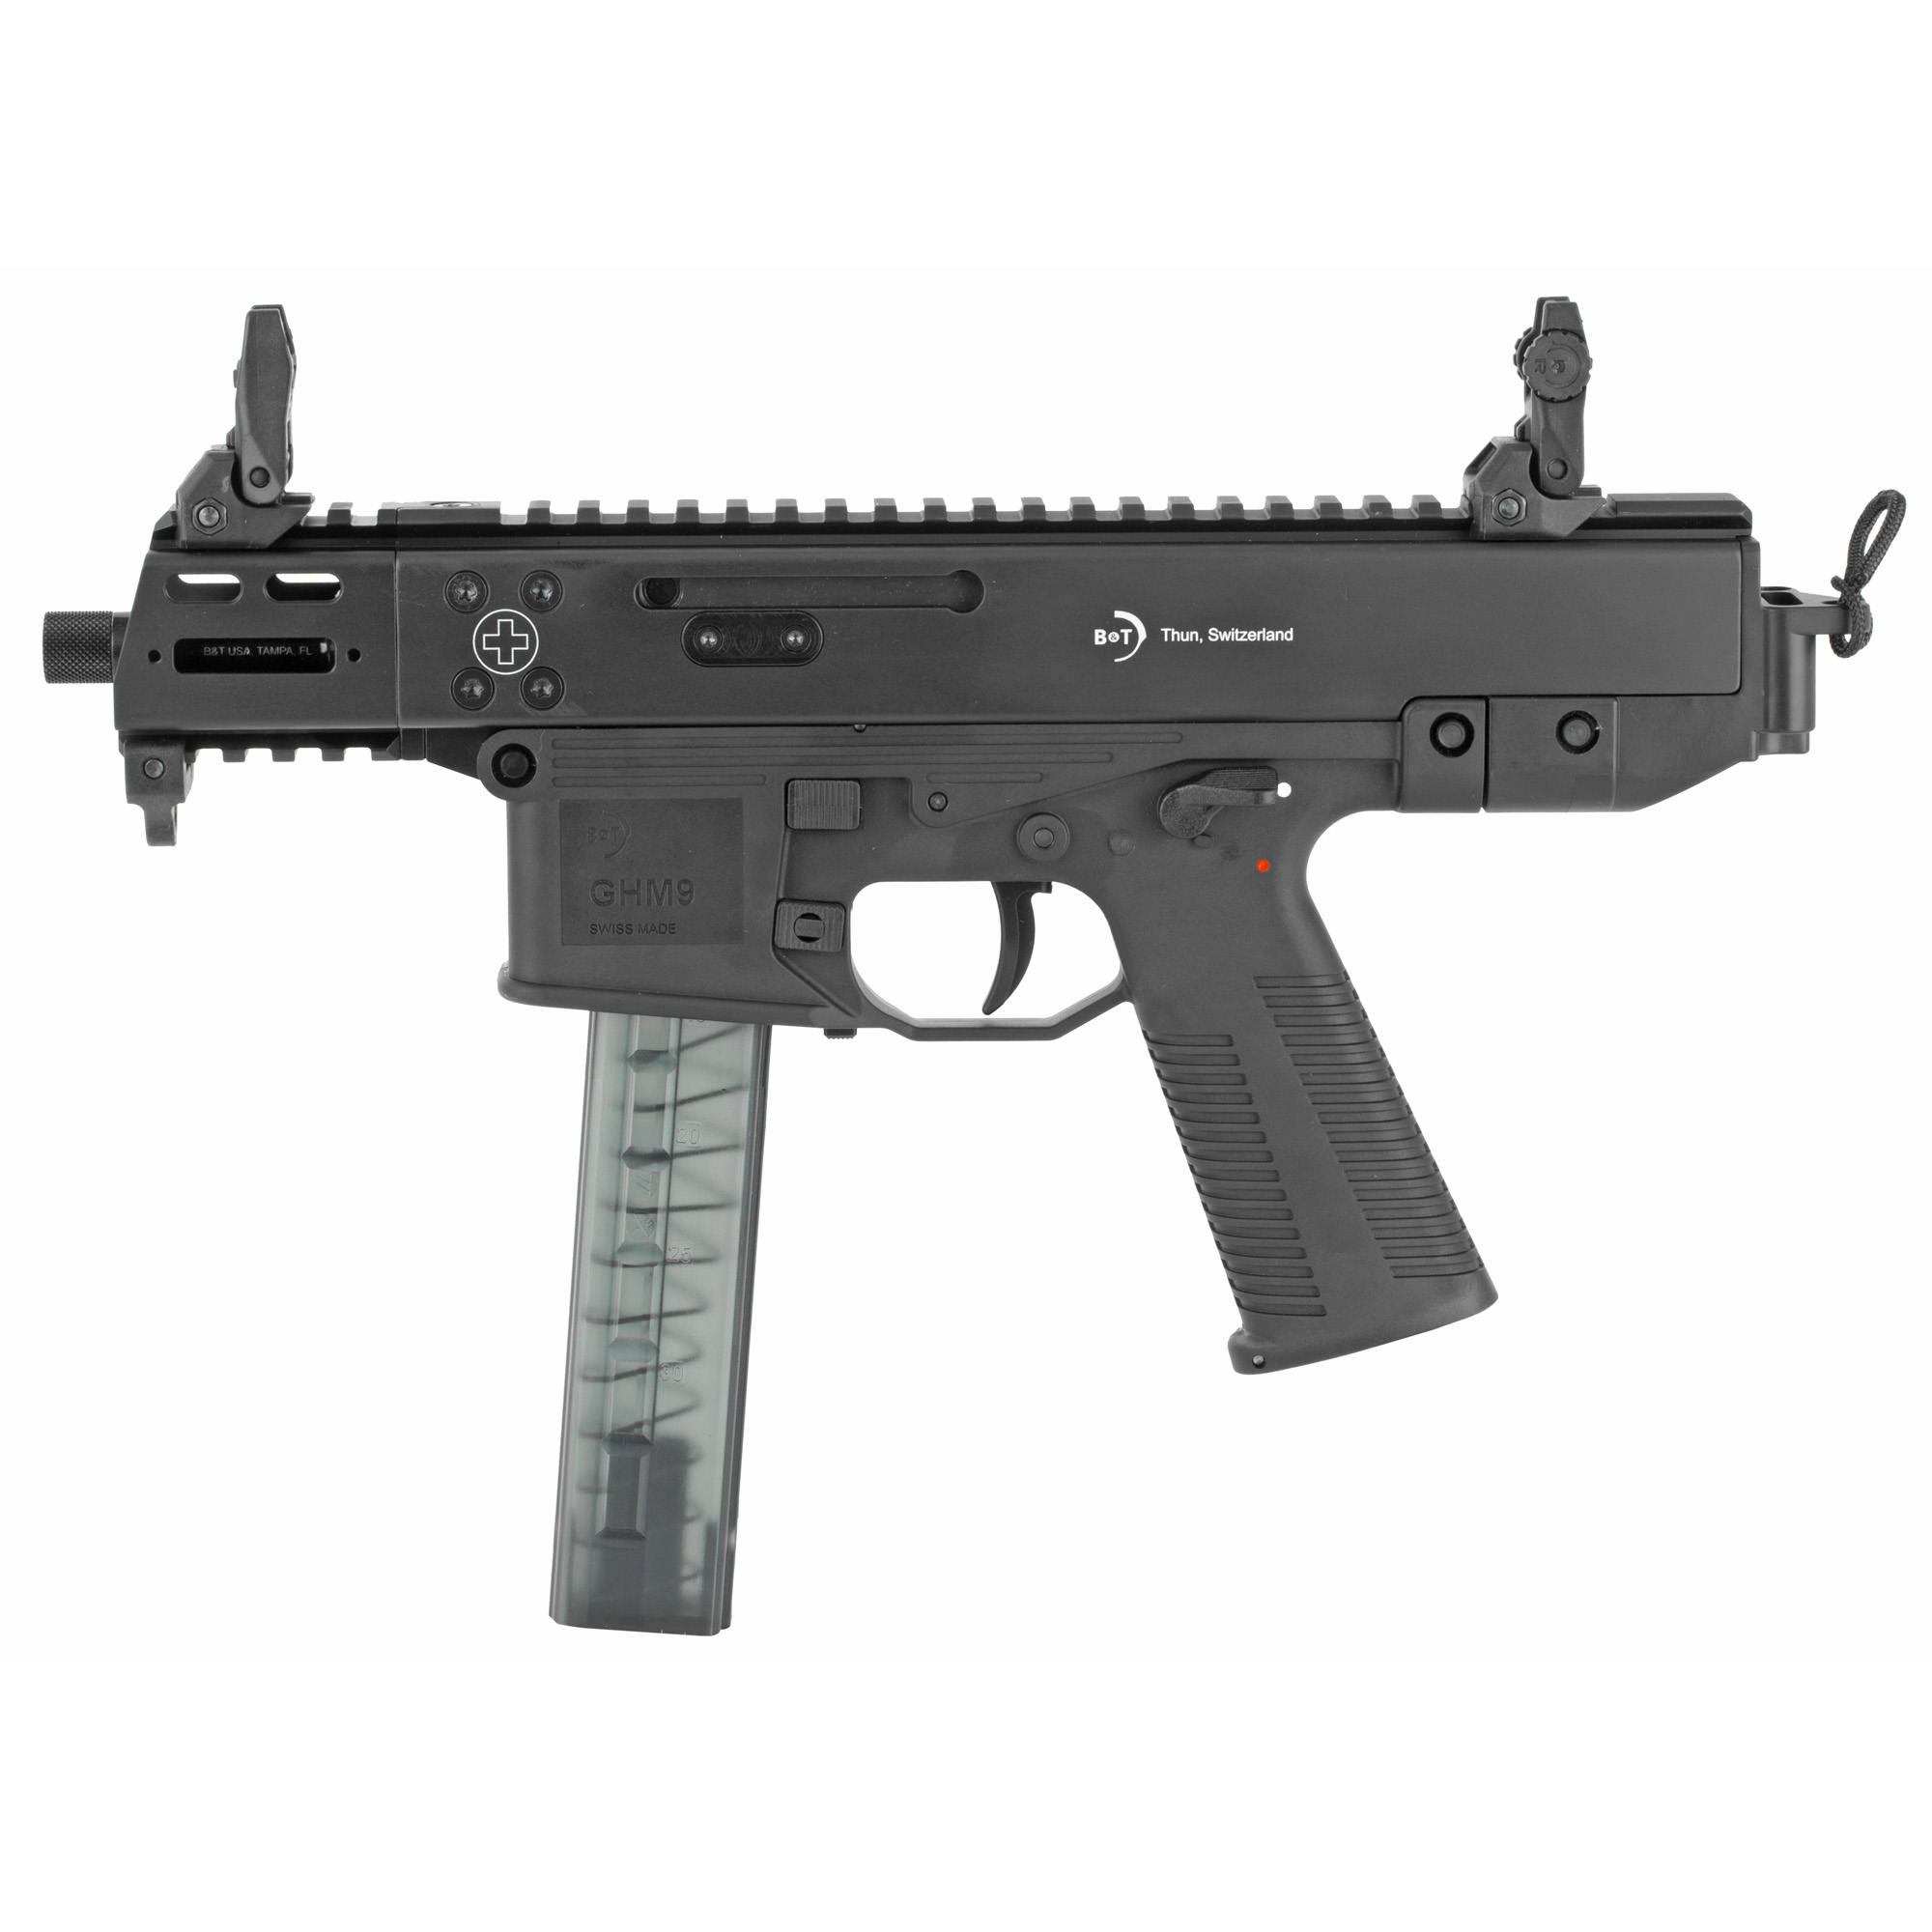 State of the art materials and manufacturing methods paired with Swiss Precision turn the GHM9 into the perfect gun for defense as well as for plinking.